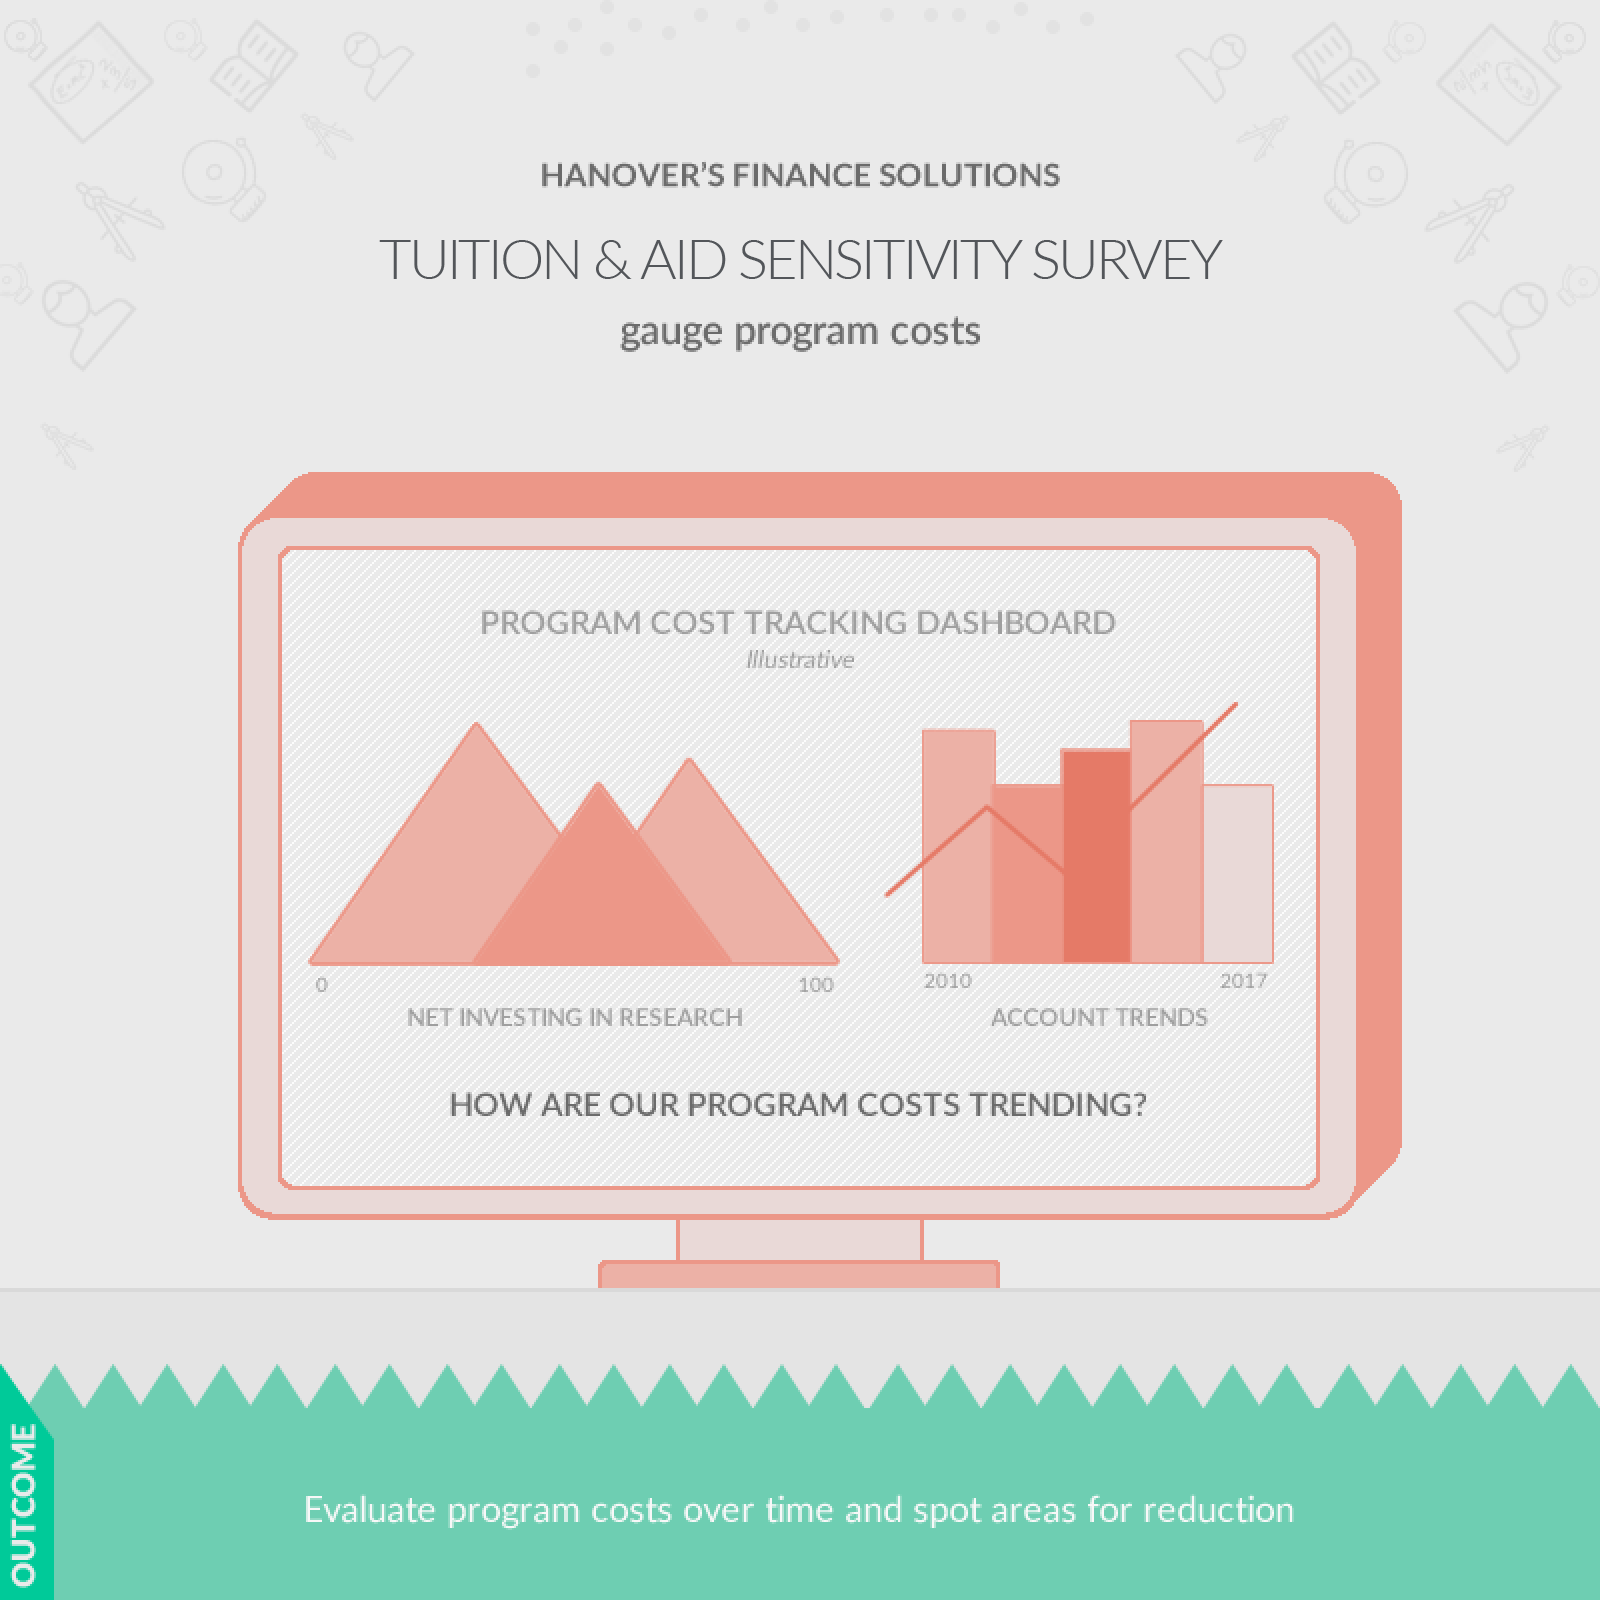 screenshot: tuition & aid sensitivity survey